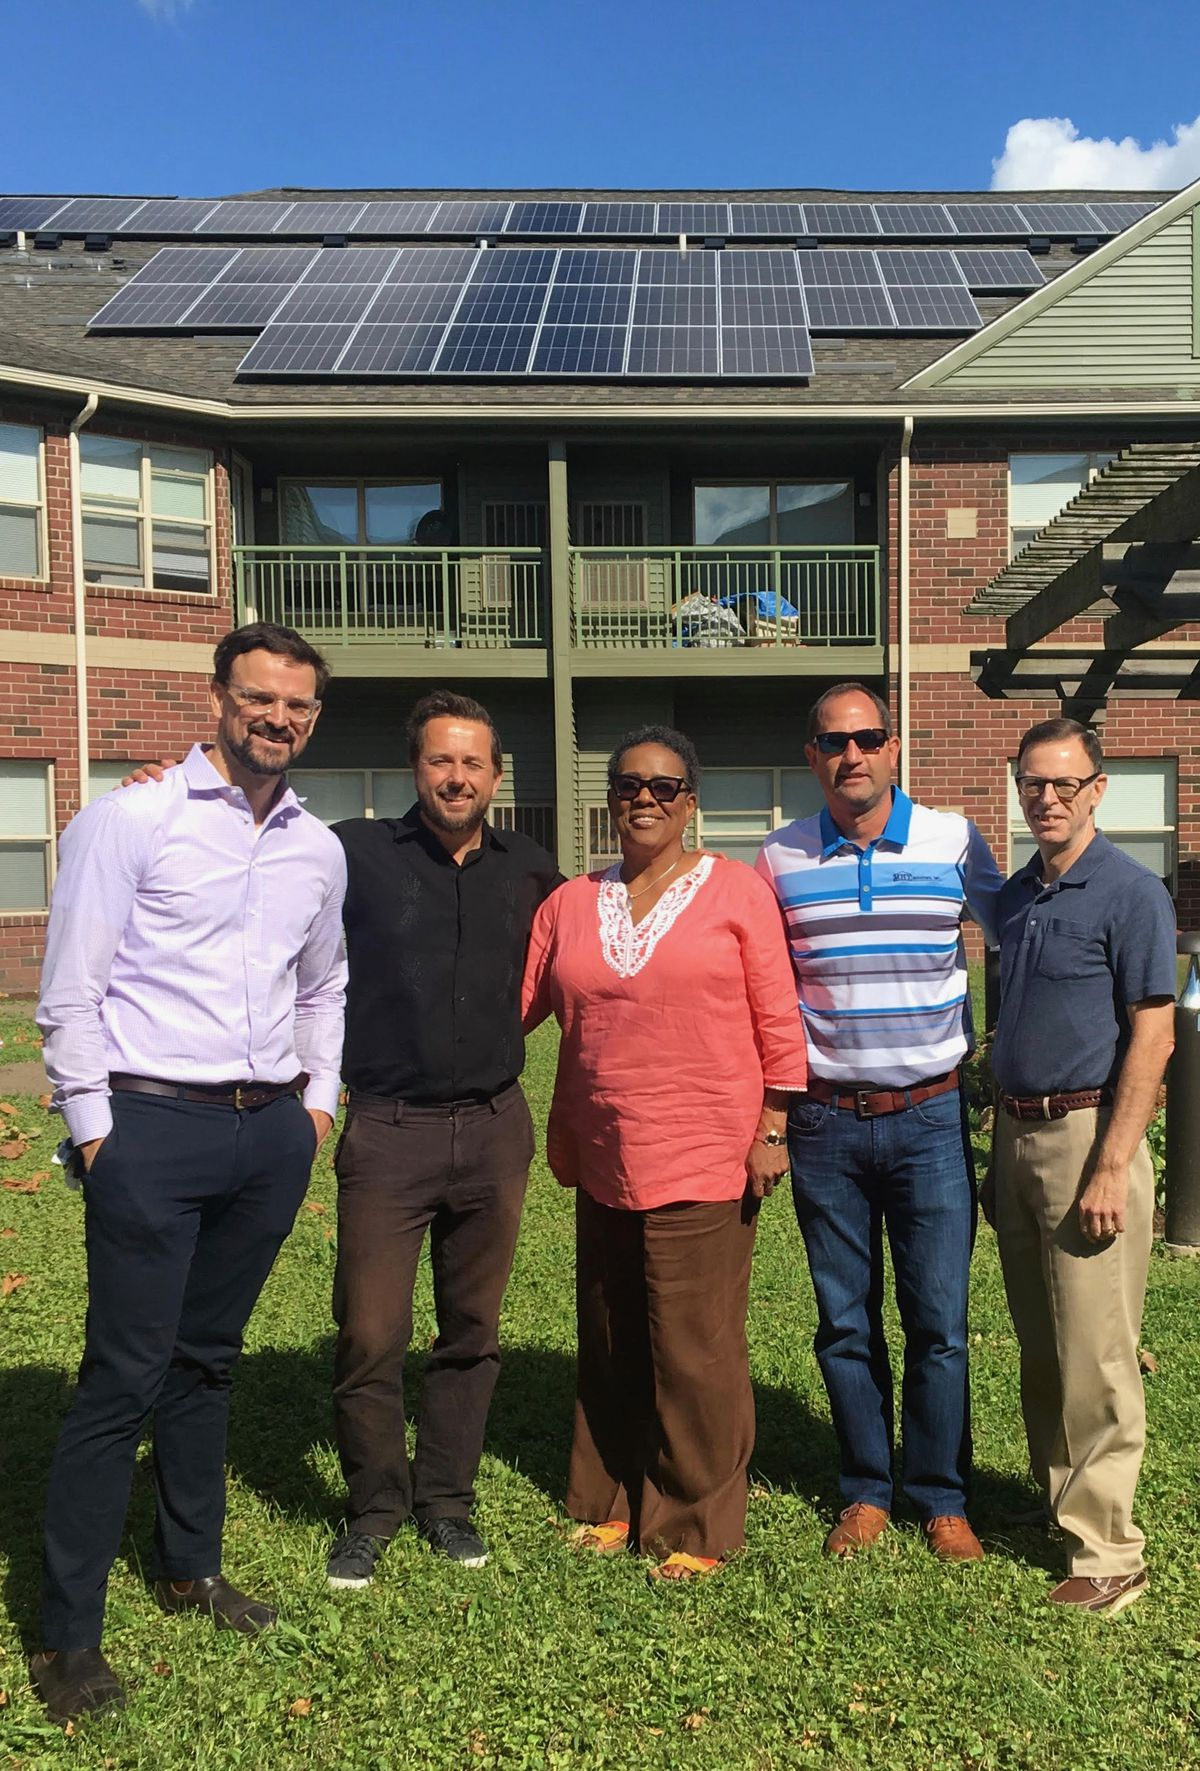 Five people stand smiling in a grassy courtyard on a sunny day. The four men are white and the one woman in the middle is black.